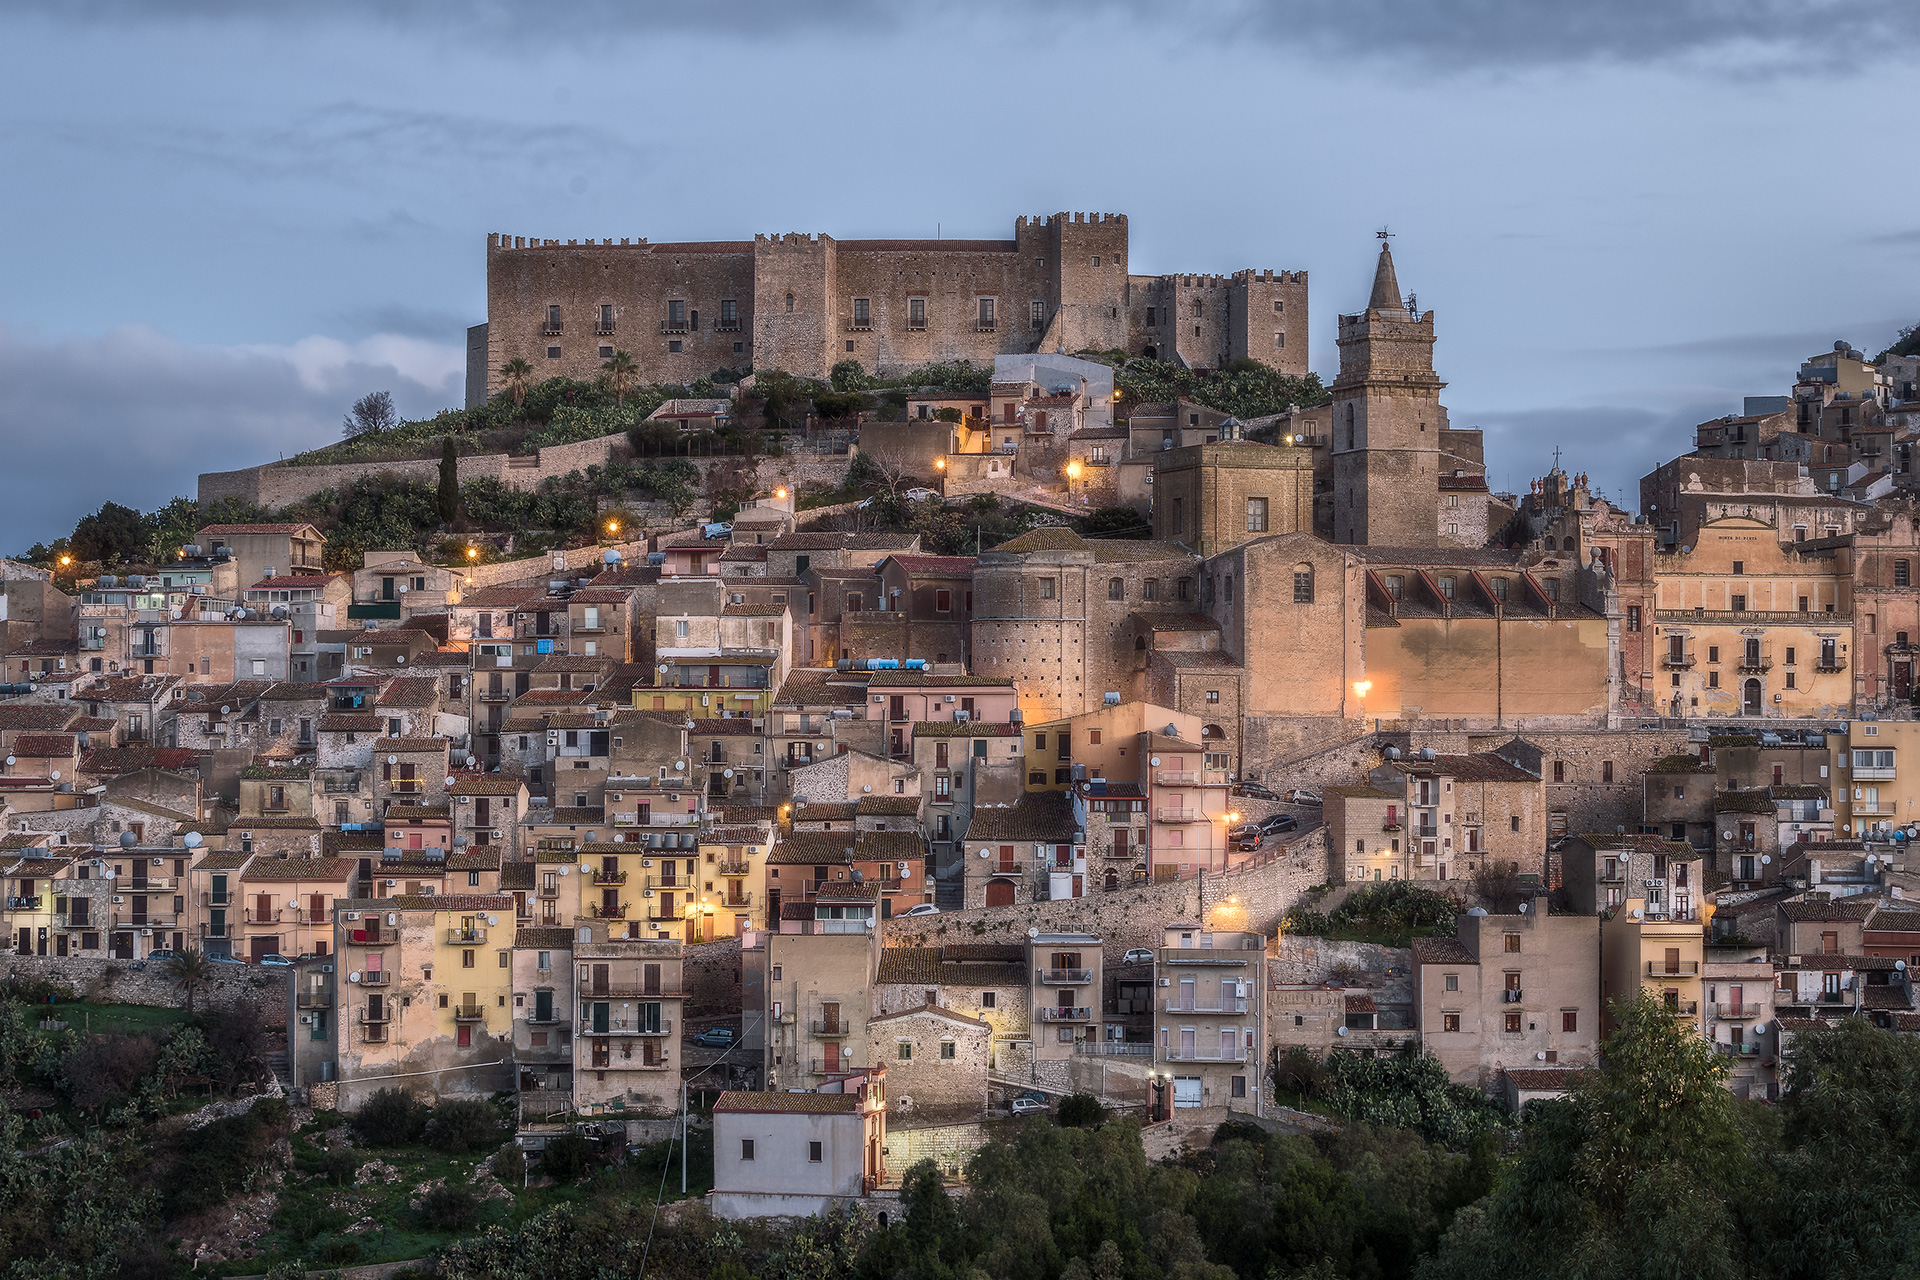 One morning in Caccamo...